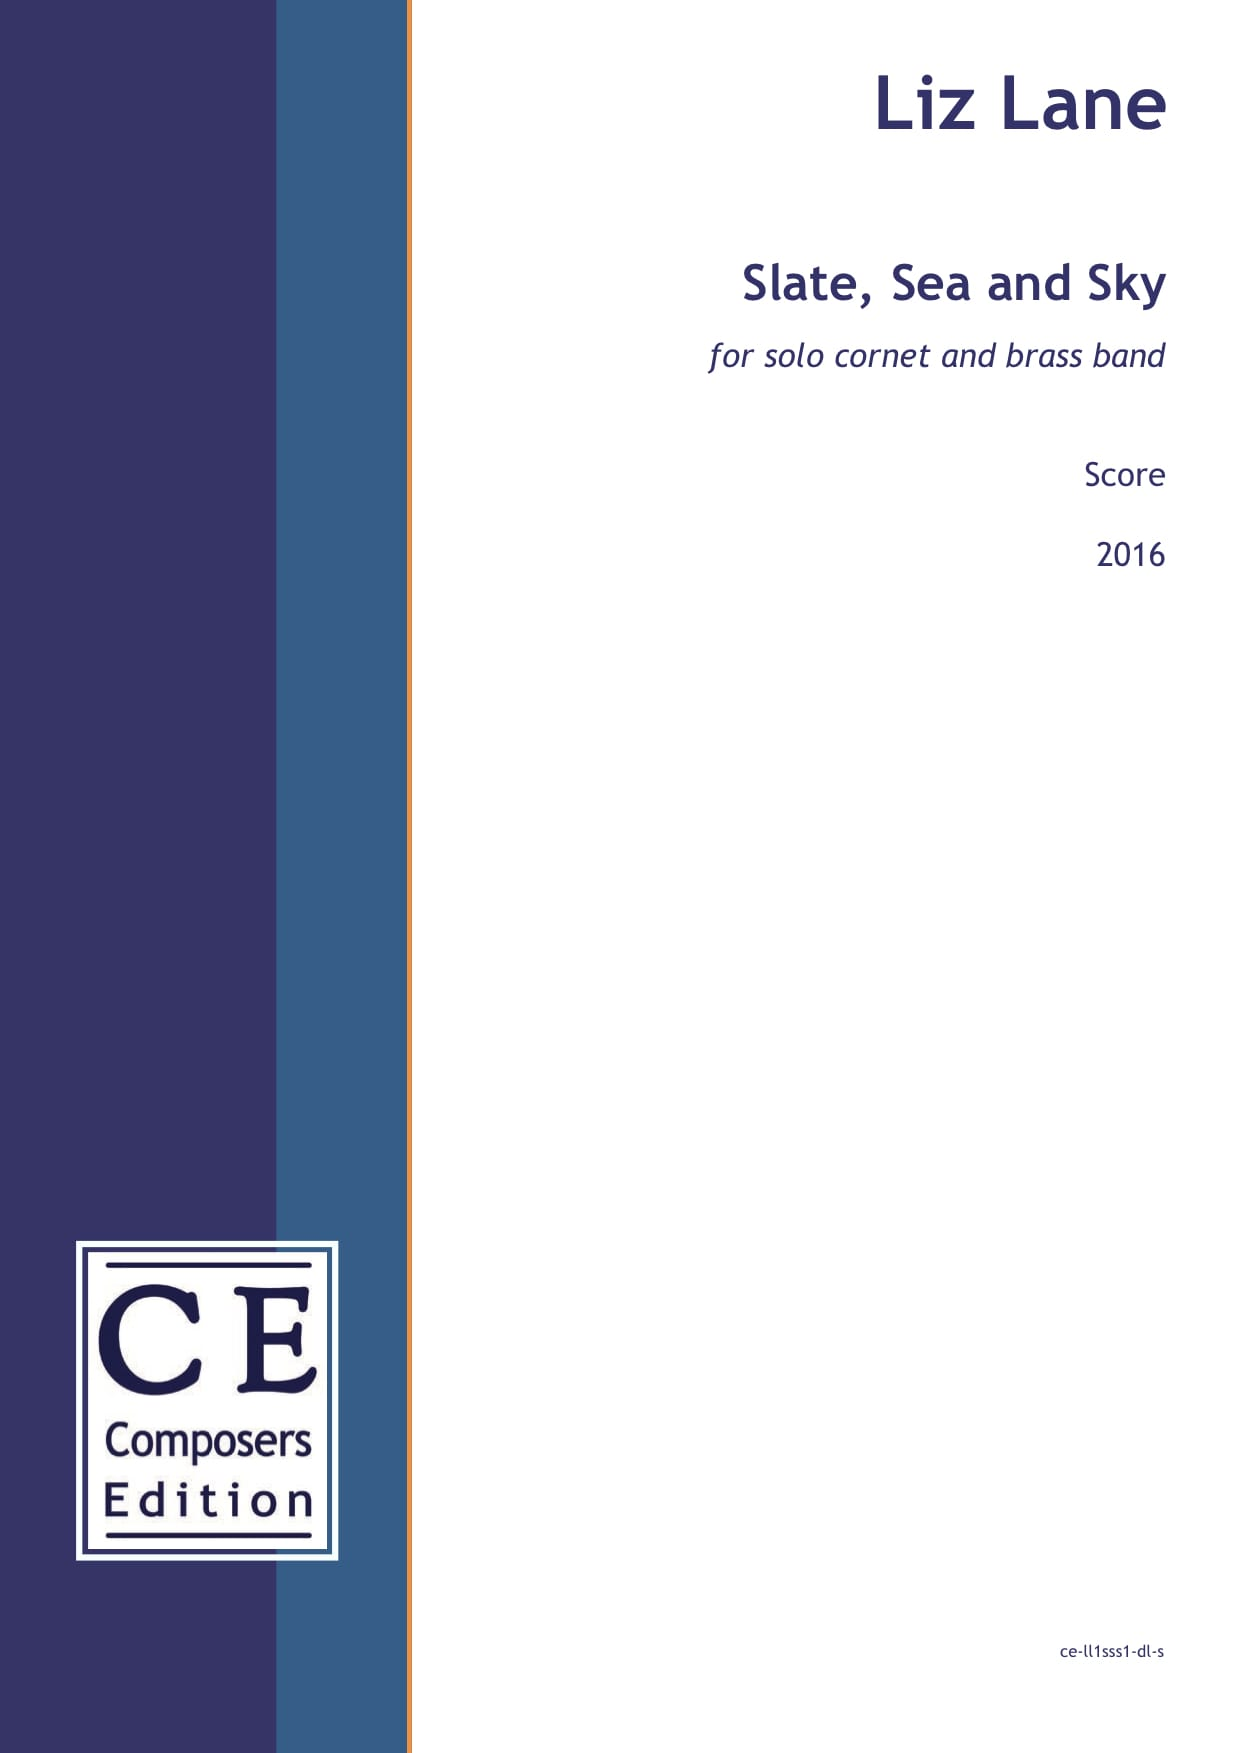 Liz Lane: Slate, Sea and Sky for solo cornet and brass band